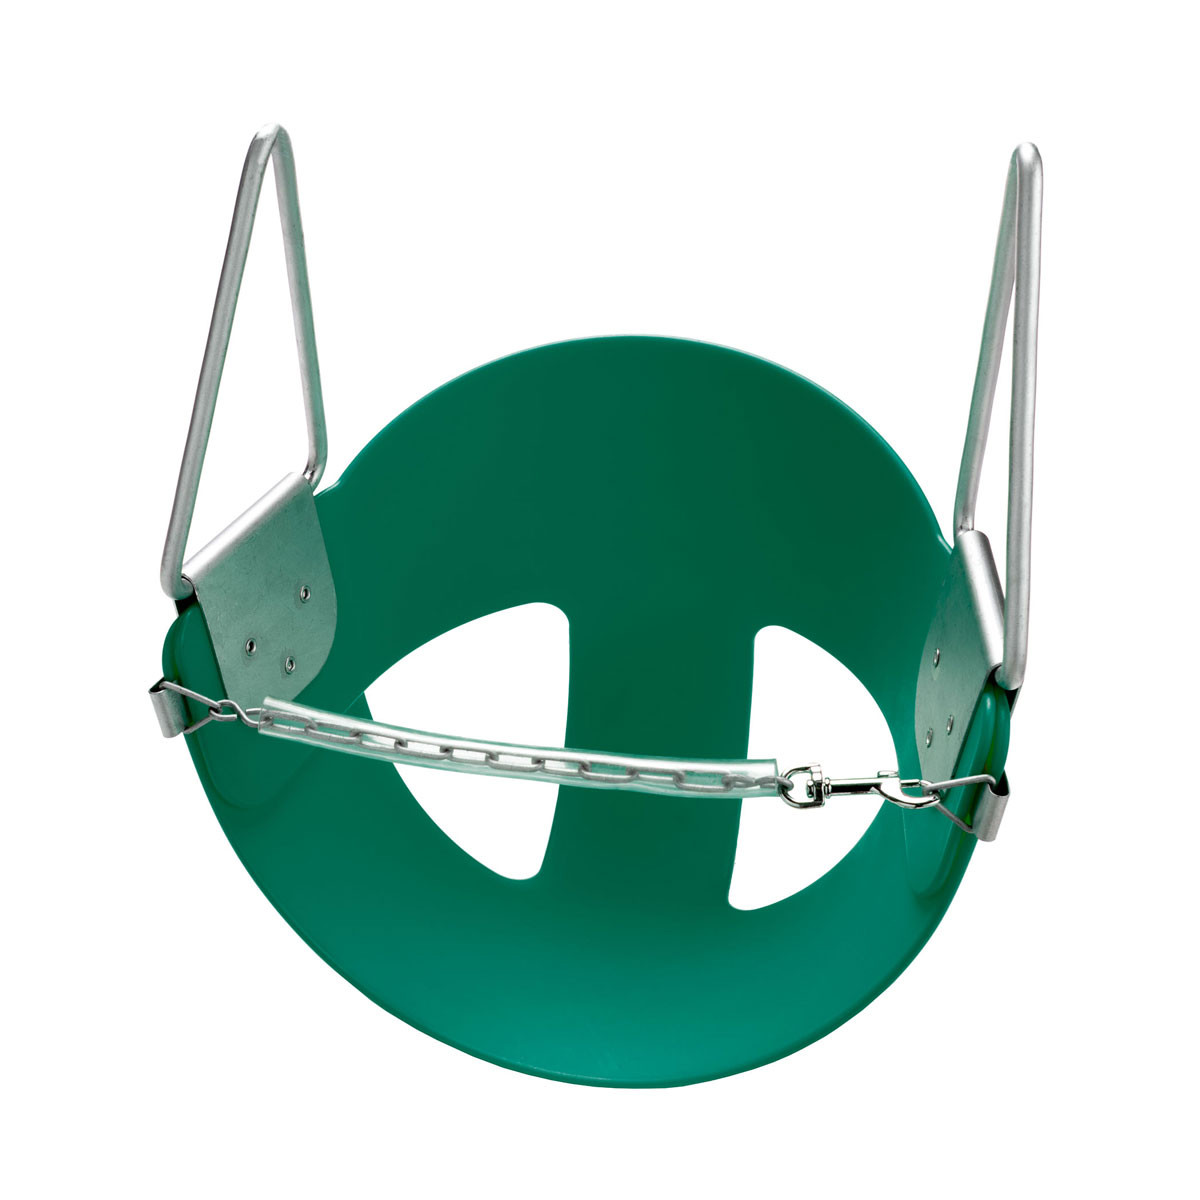 CoPoly Half Bucket Swing Seat (S-13R) - Green